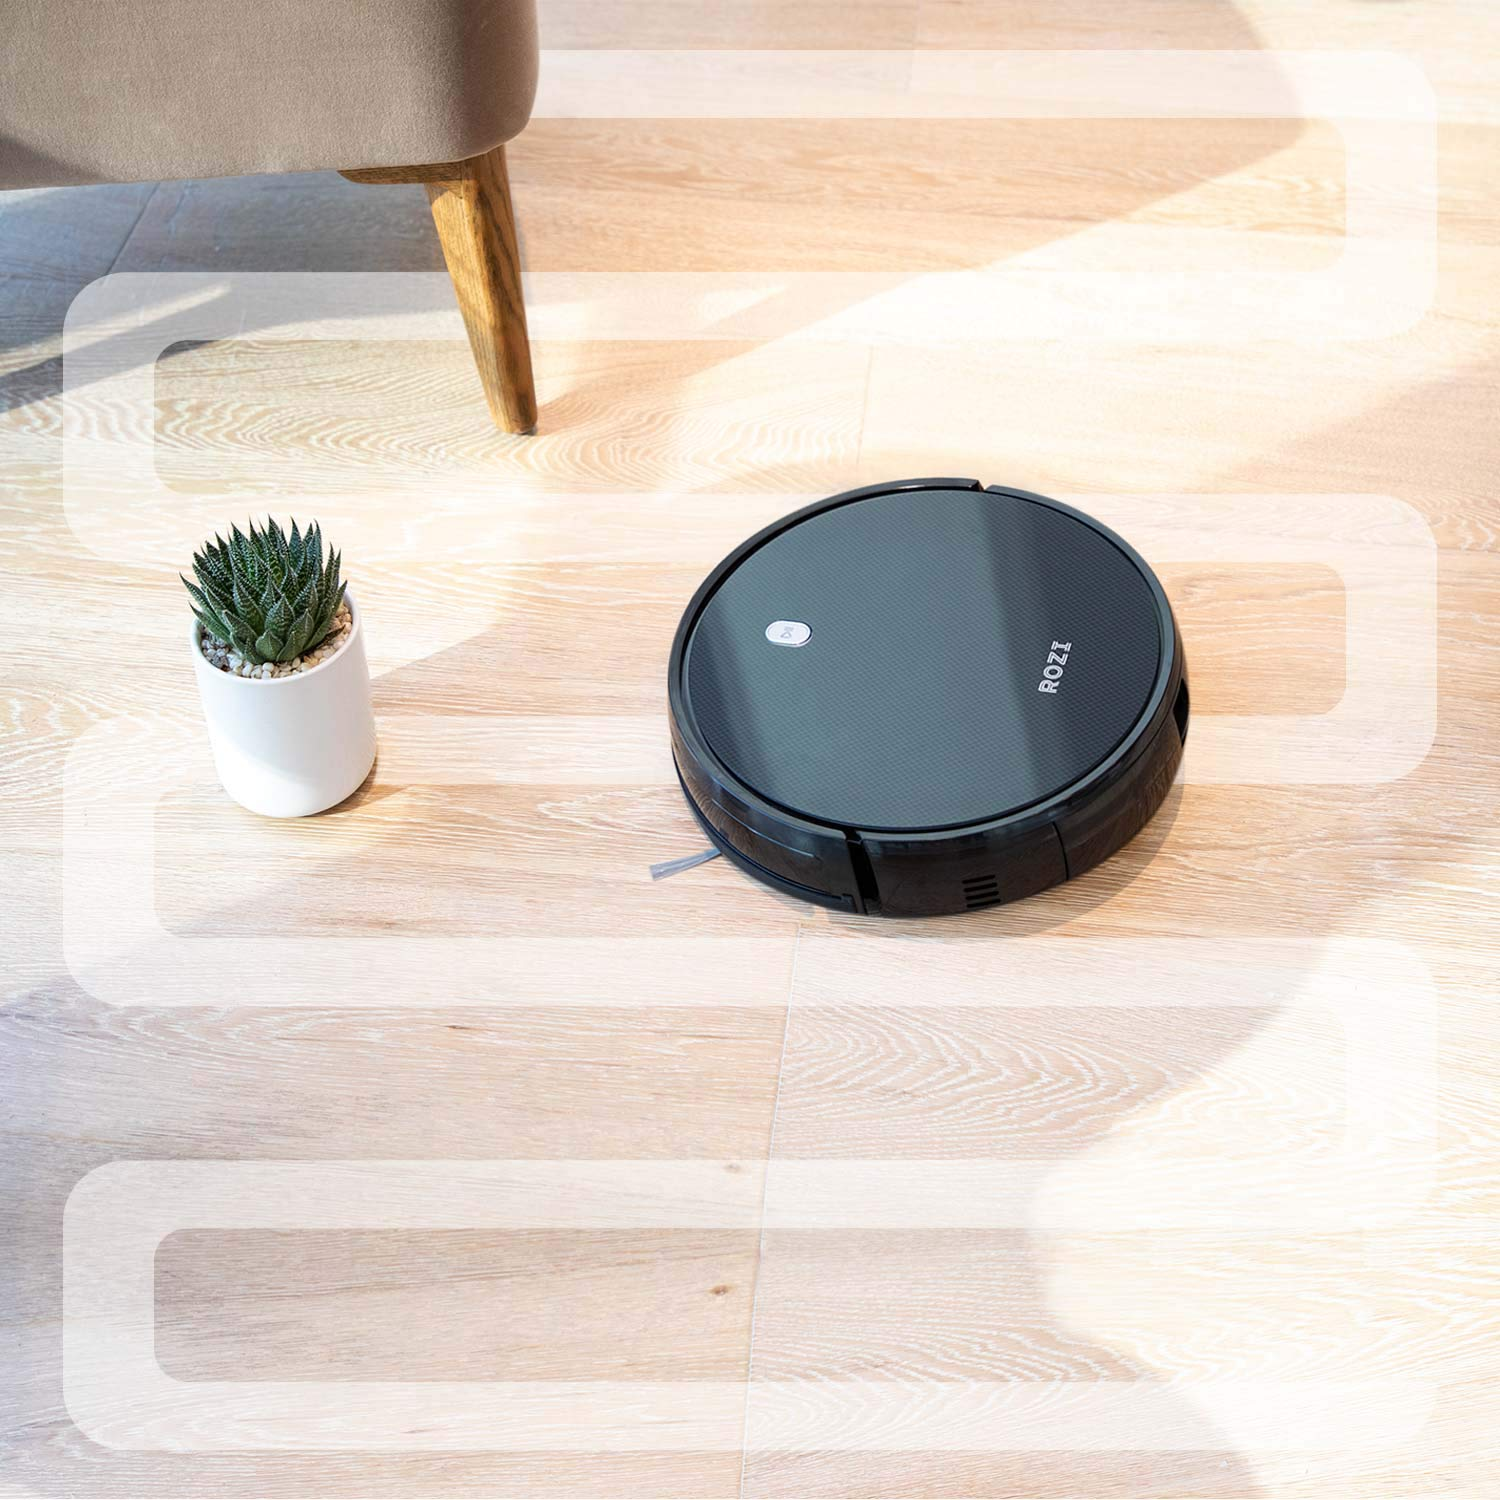 Robot Vacuum, 1600Pa Strong Suction, Smart Navi-System, 120mins Long Lasting, Quick Auto Charge, Multiple Cleaning Modes, Timing Function, Best for Pet Hair, Hard Floor & Low-Pile Carpet(Black)